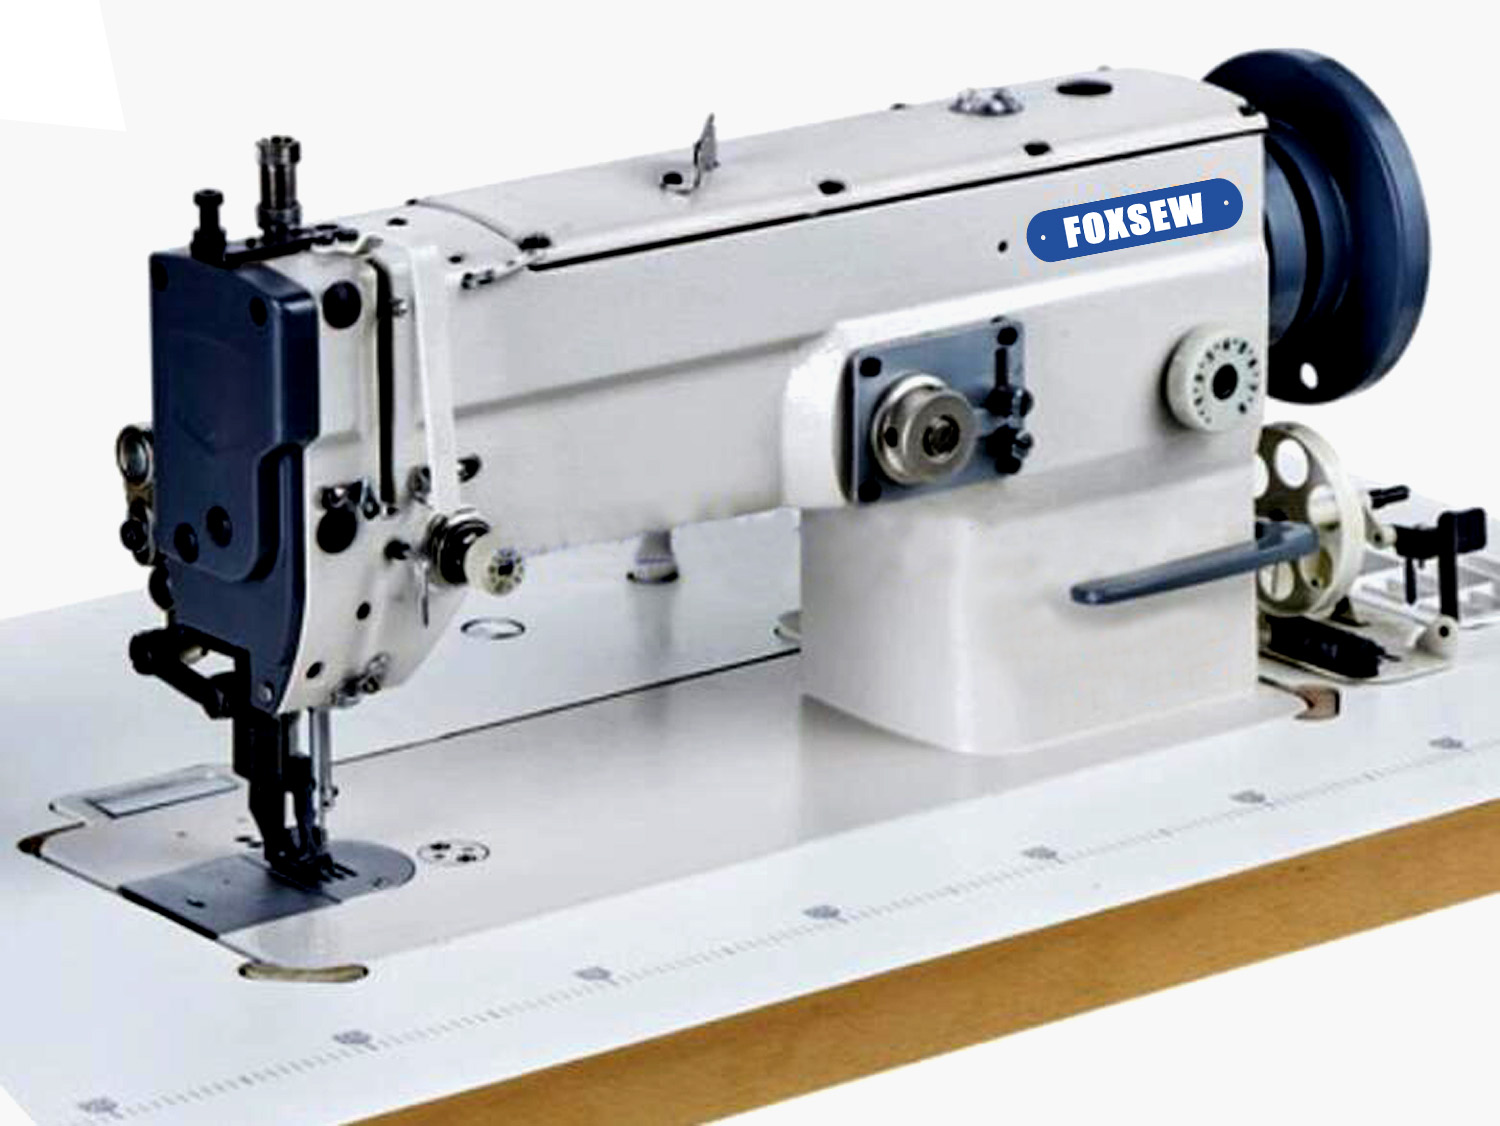 Top and Bottom Feed Zigzag Sewing Machine FX-2530